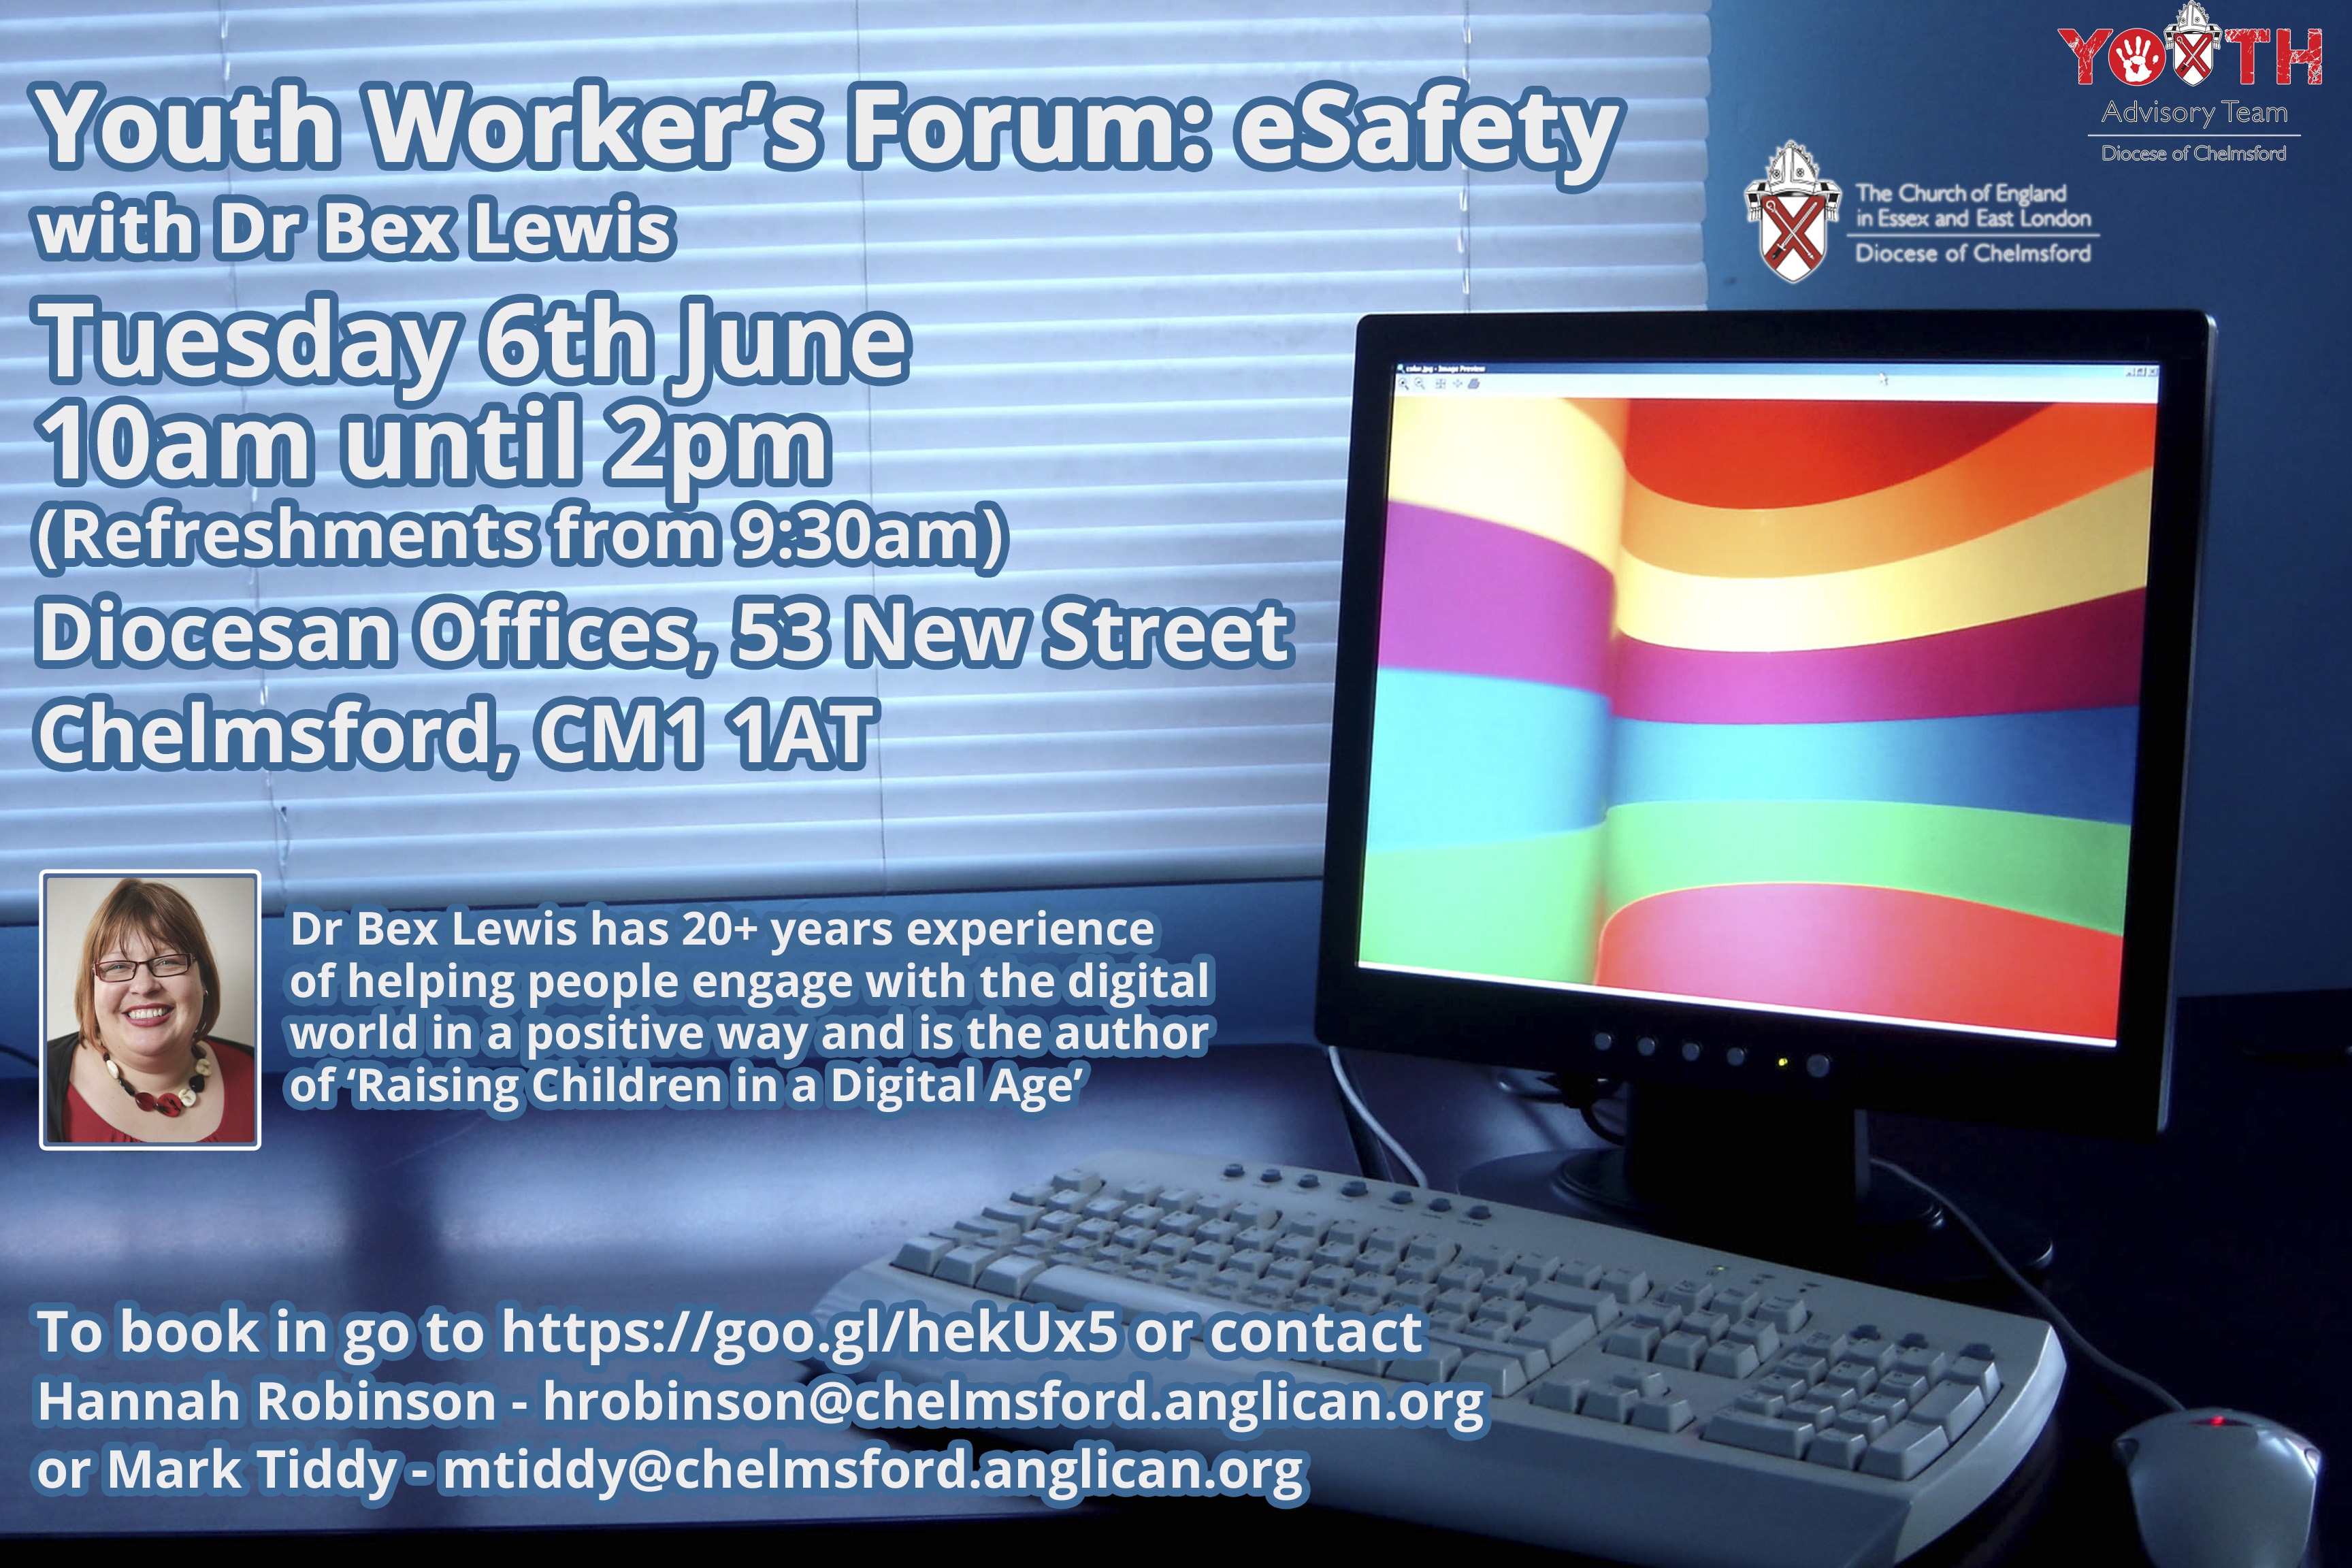 Youth Worker's Forum - eSafety